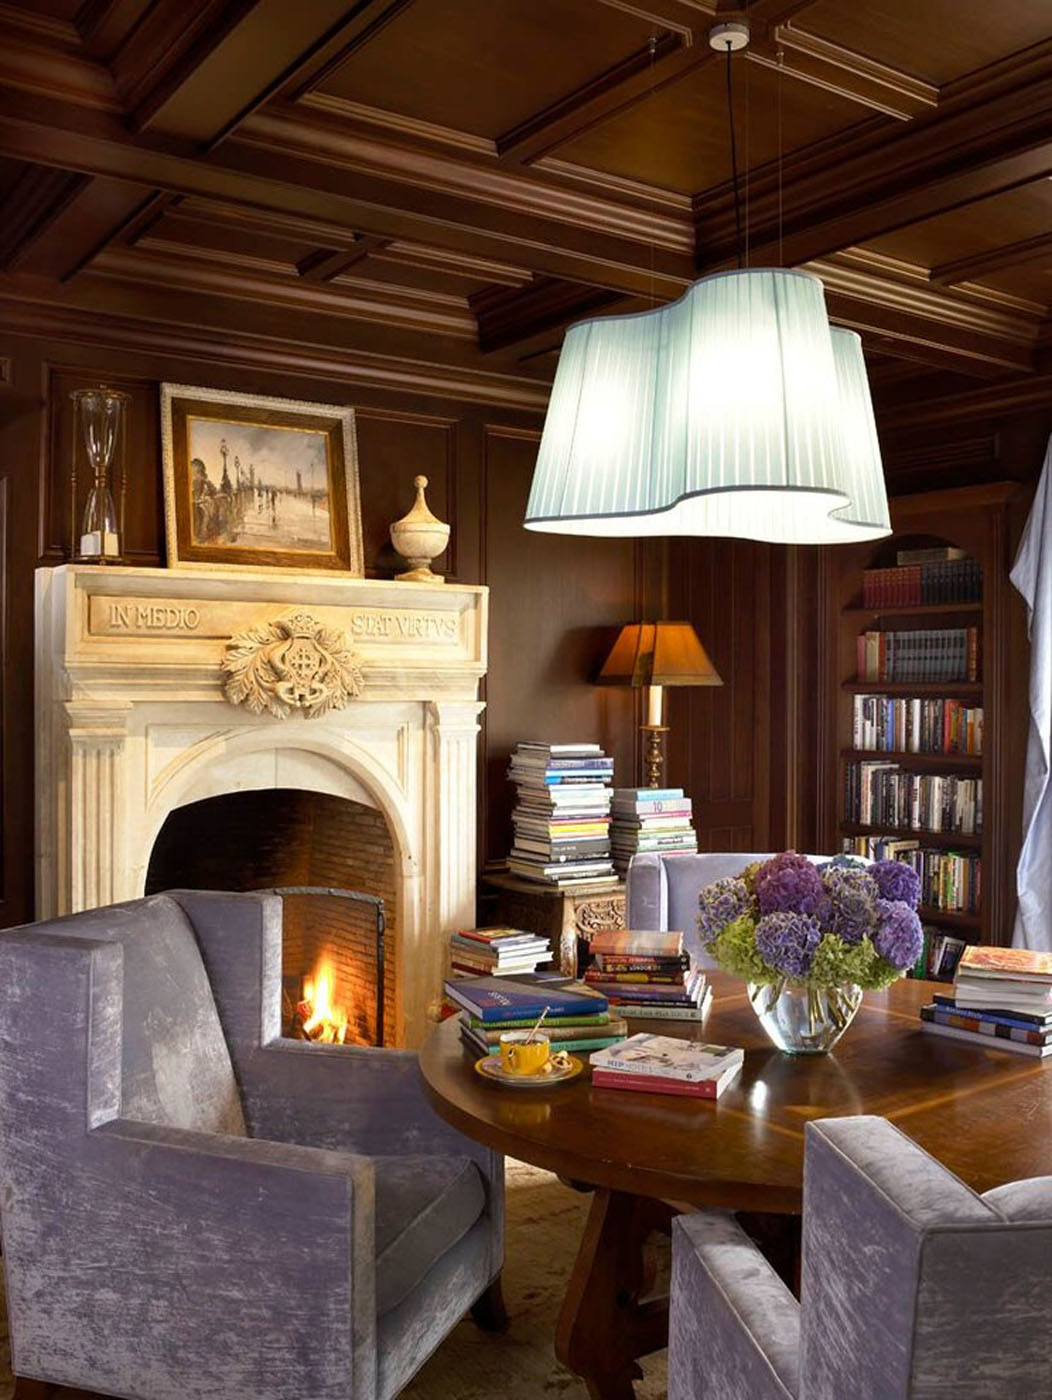 Interior Design Library Room: LIBRARIES AND OFFICES THAT INSPIRE